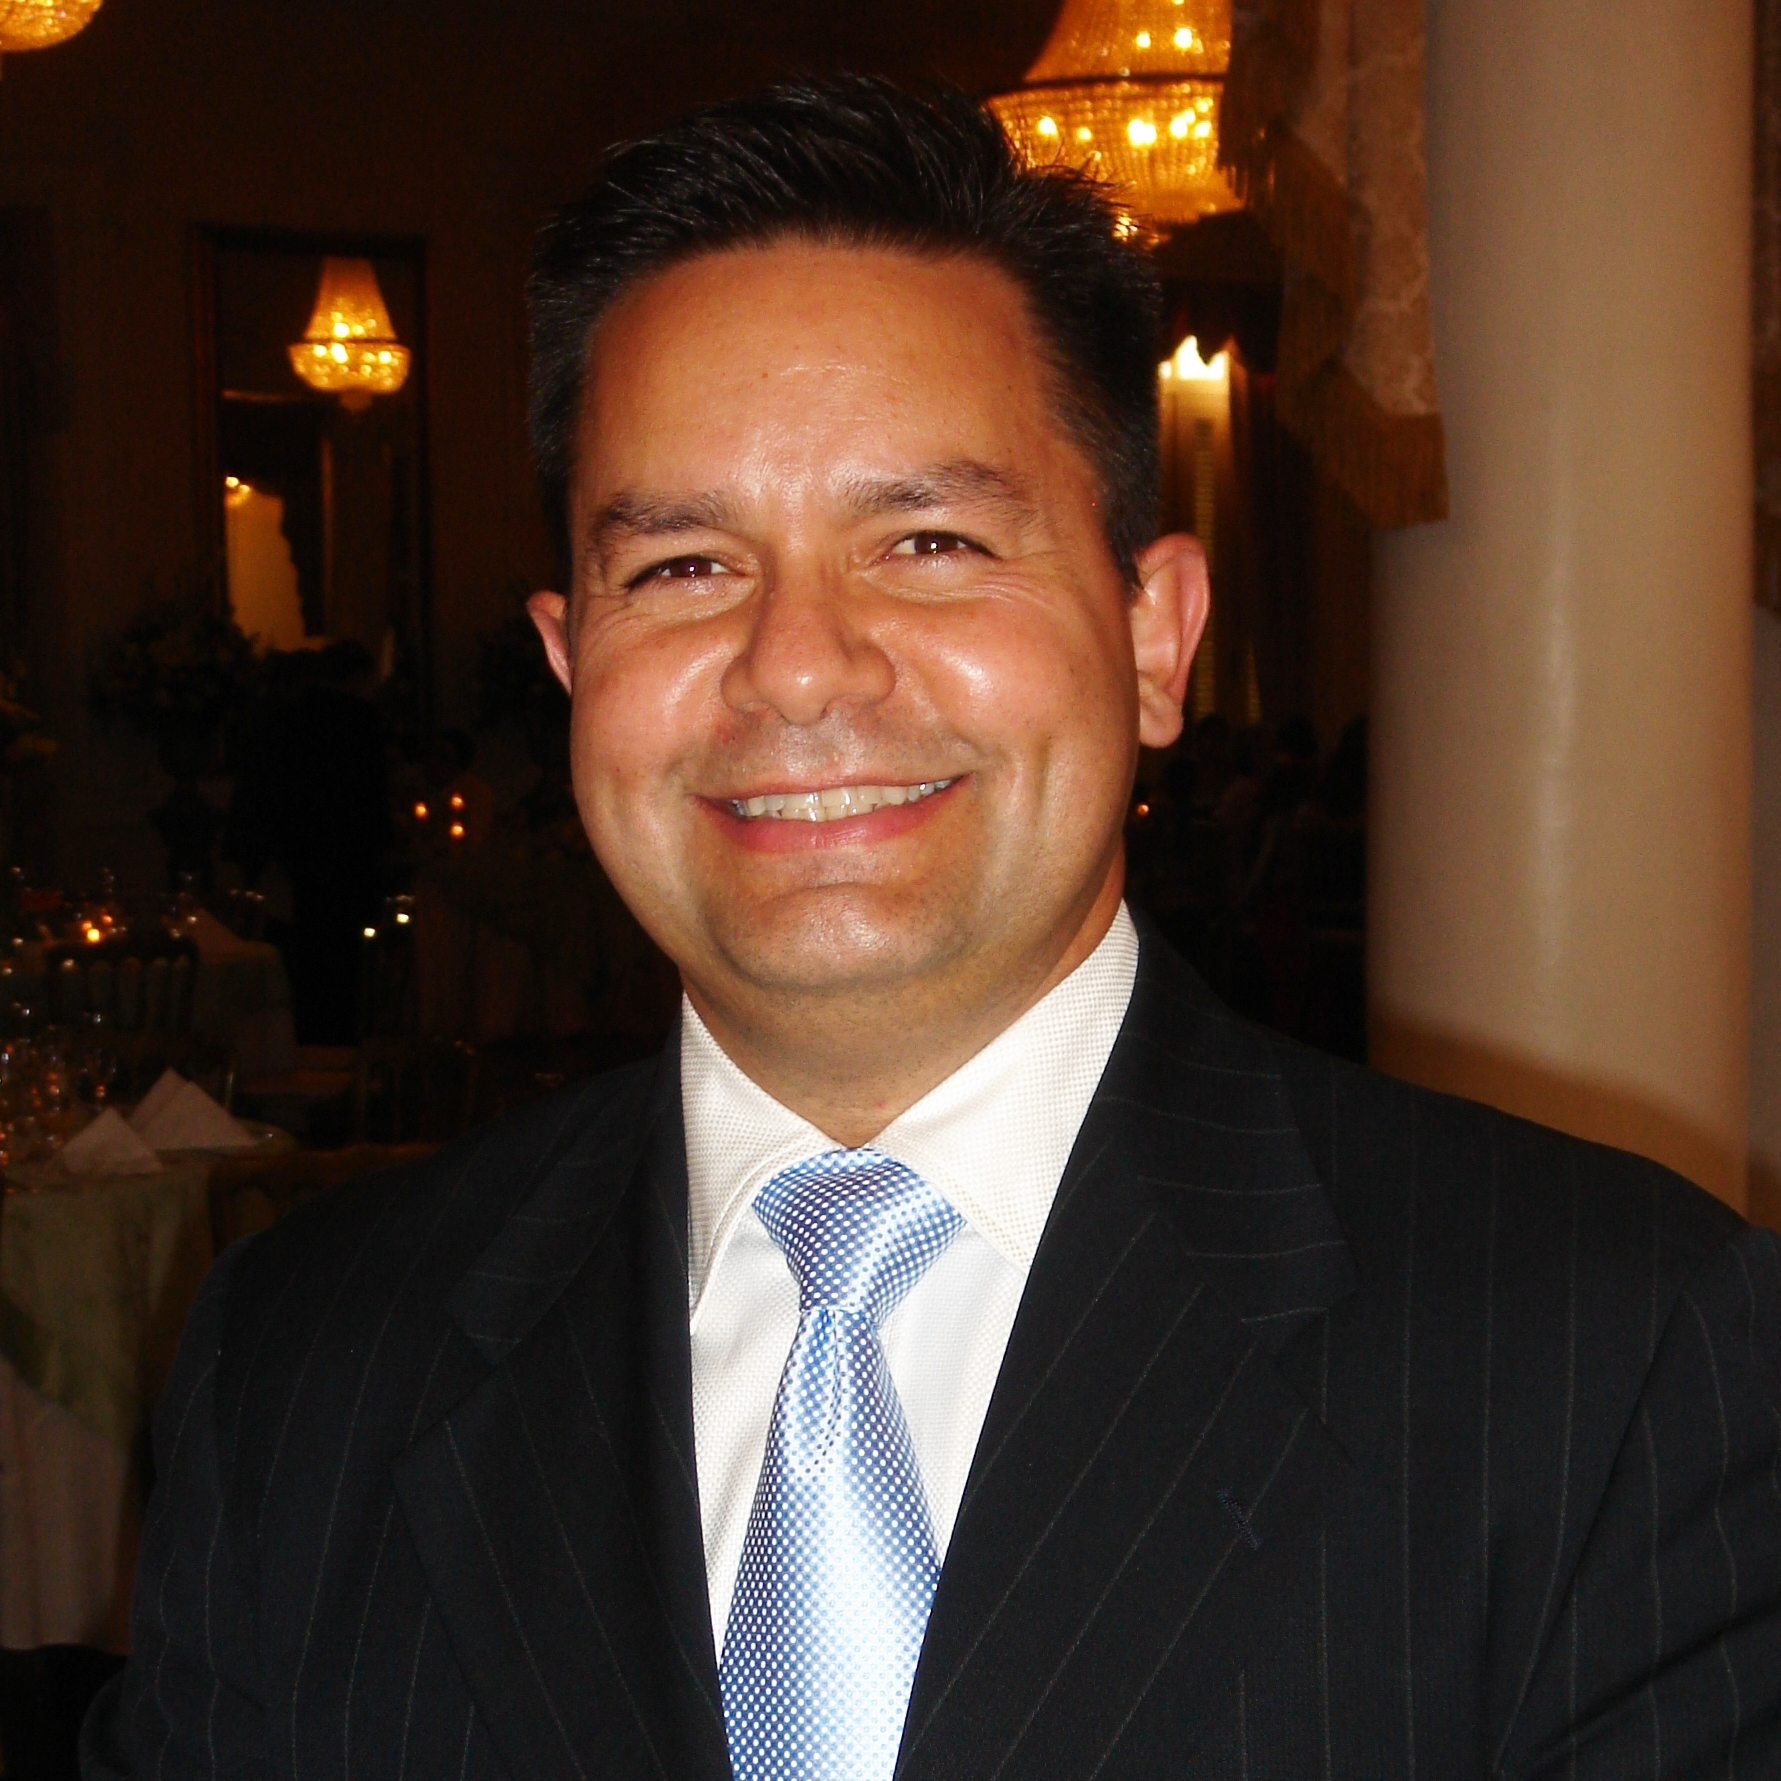 Superintendent Recommends Dr. José Colón-Rivas for Chief Operating Officer